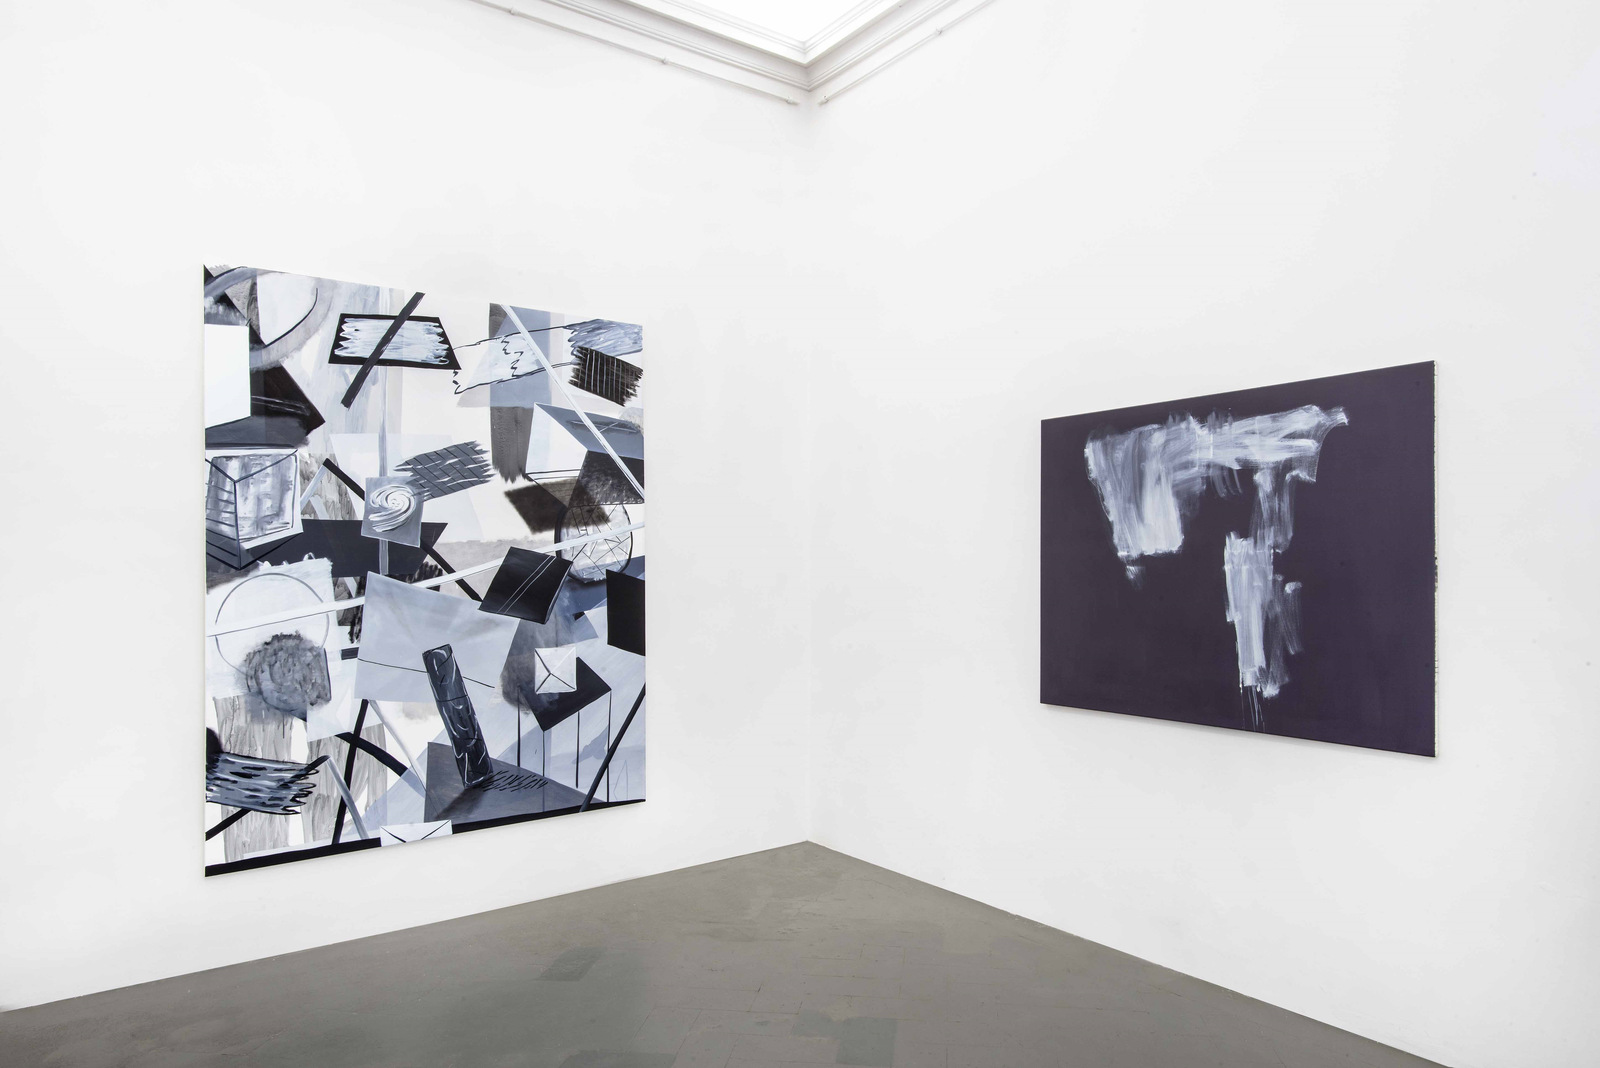 1.Installation View. Alice browne, Alexander Lieck. Courtesy of Eduardo Secci Contemporary